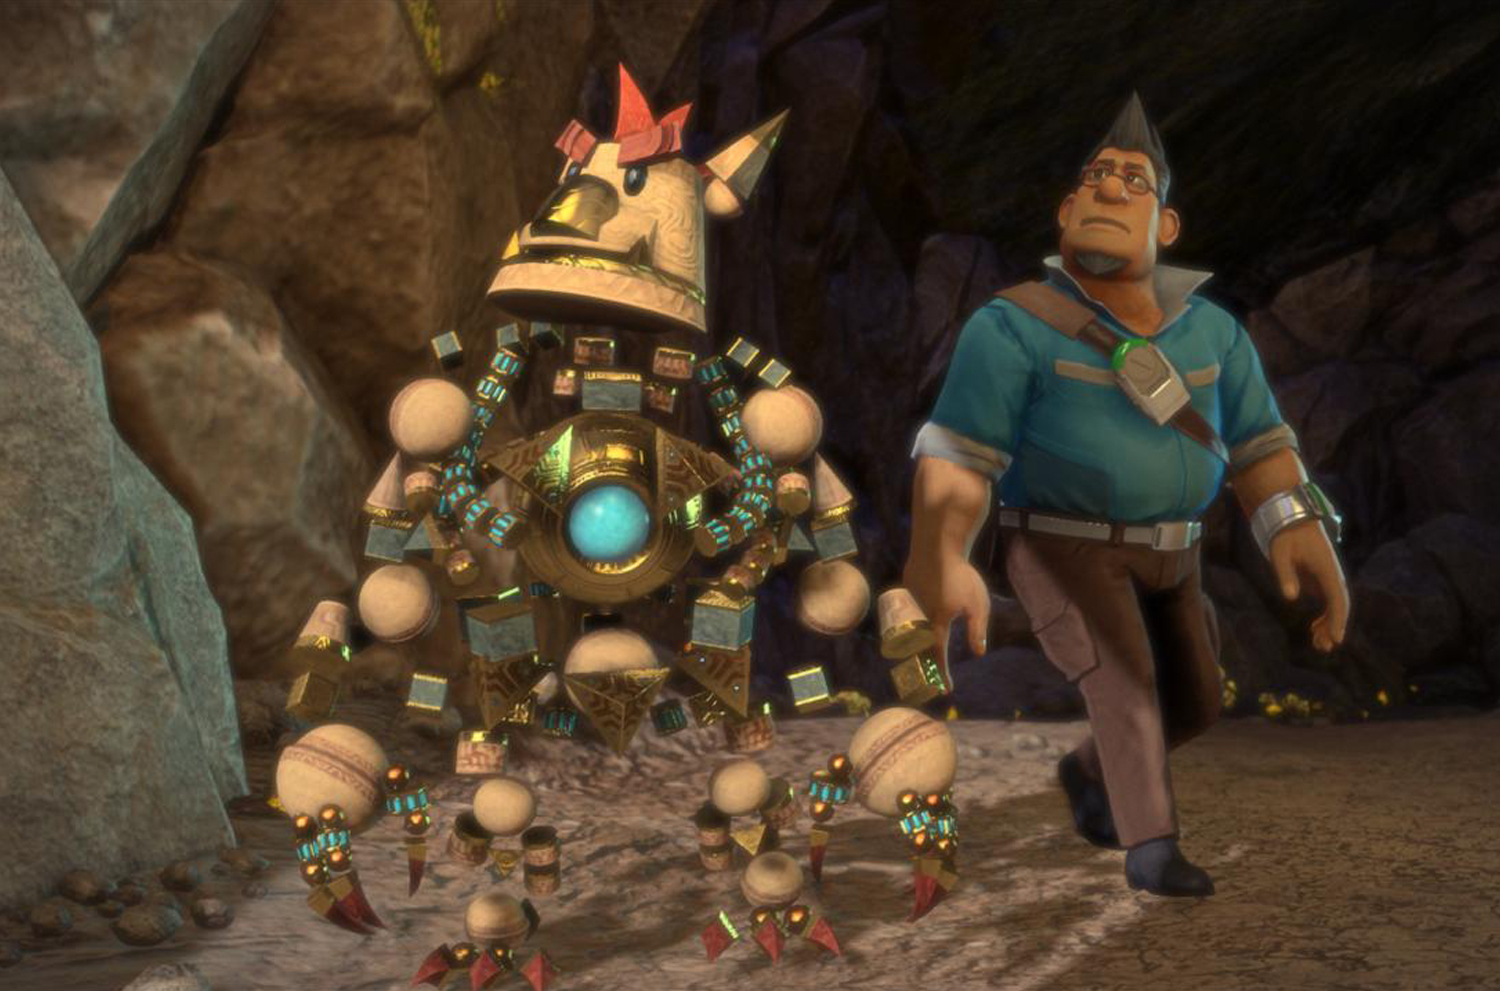 file_6786_Knack-Robot-and-man